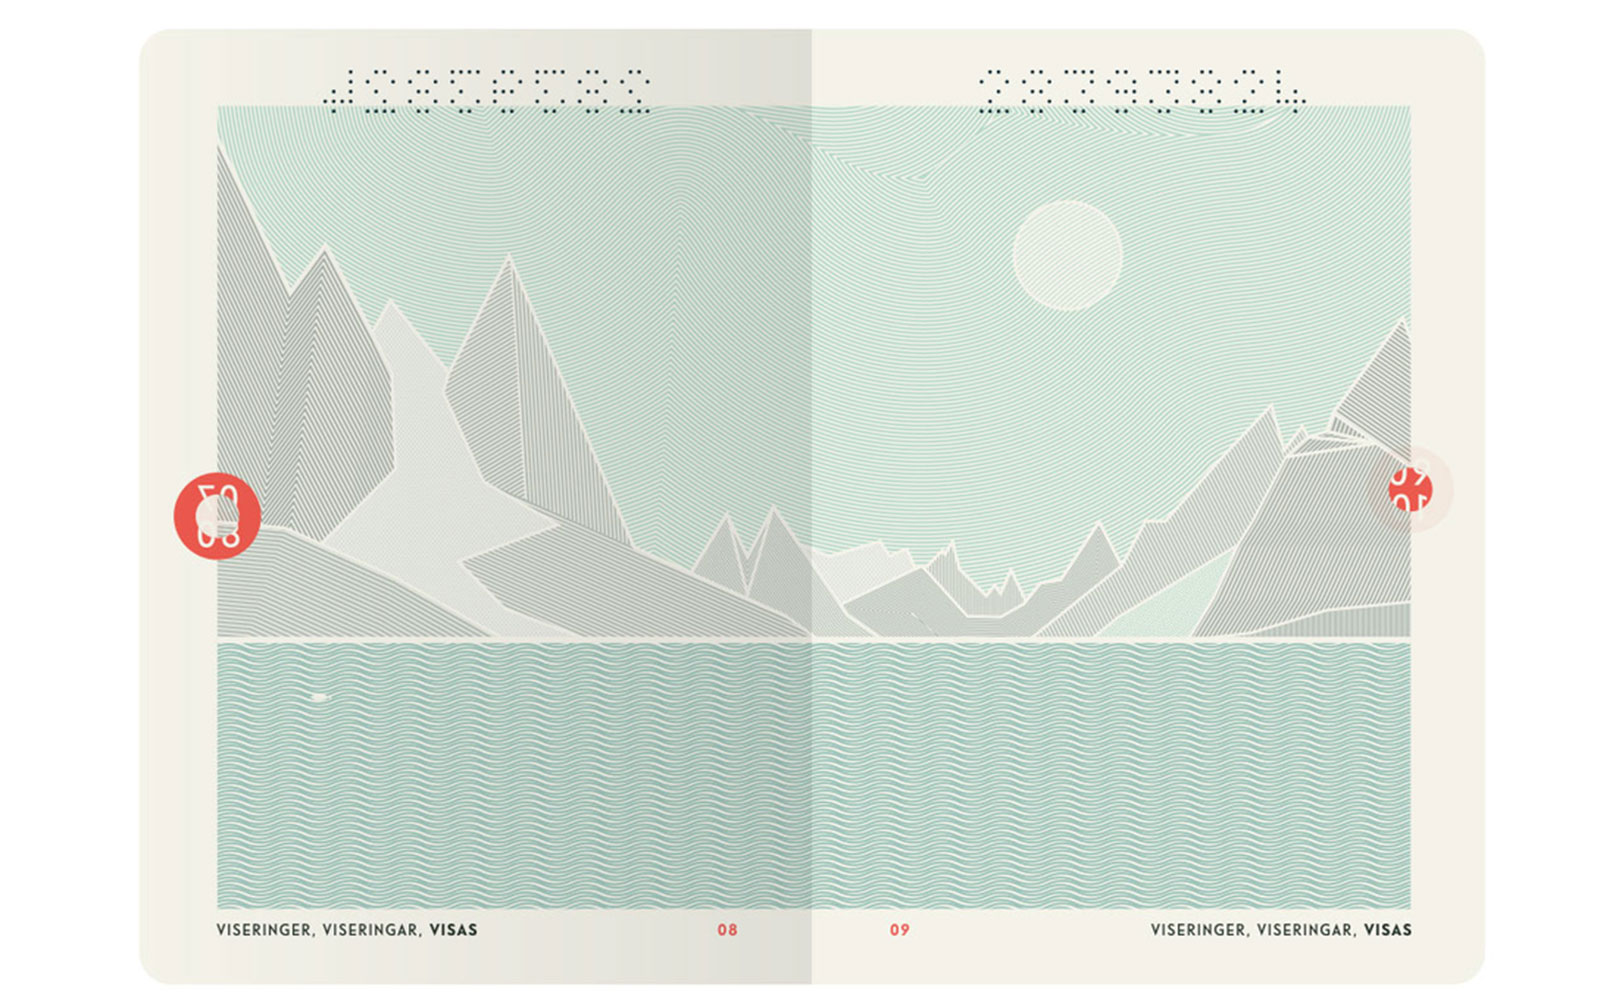 Norway's Passport Design is a Work of Art